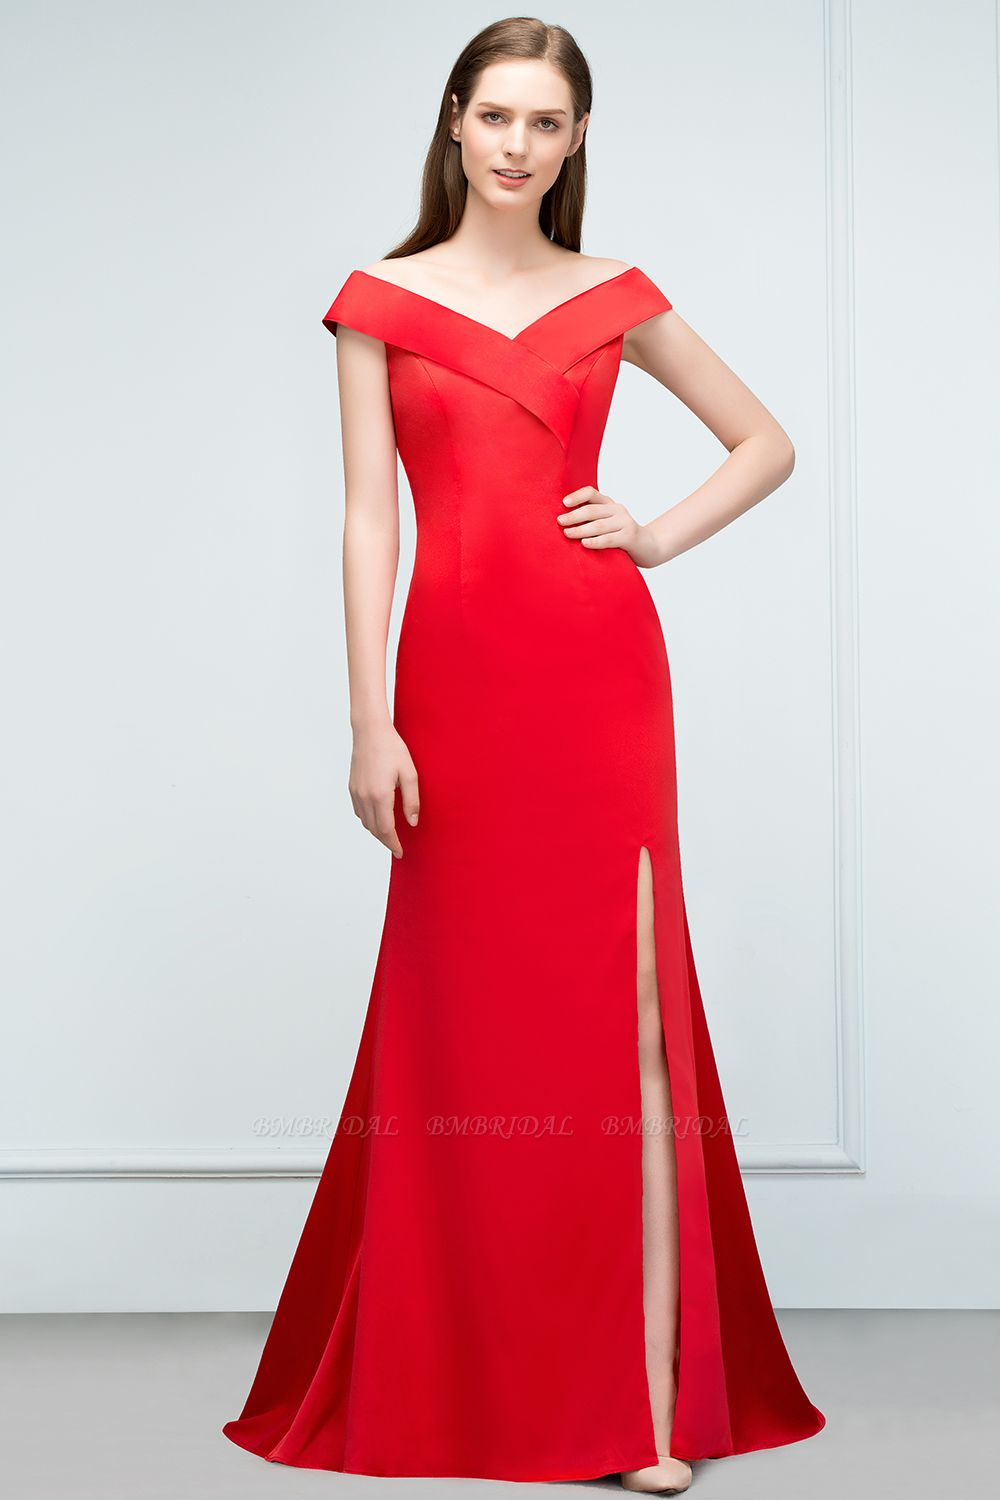 BMbridal Red Off-the-Shoulder Mermaid Prom Dress Long With Split